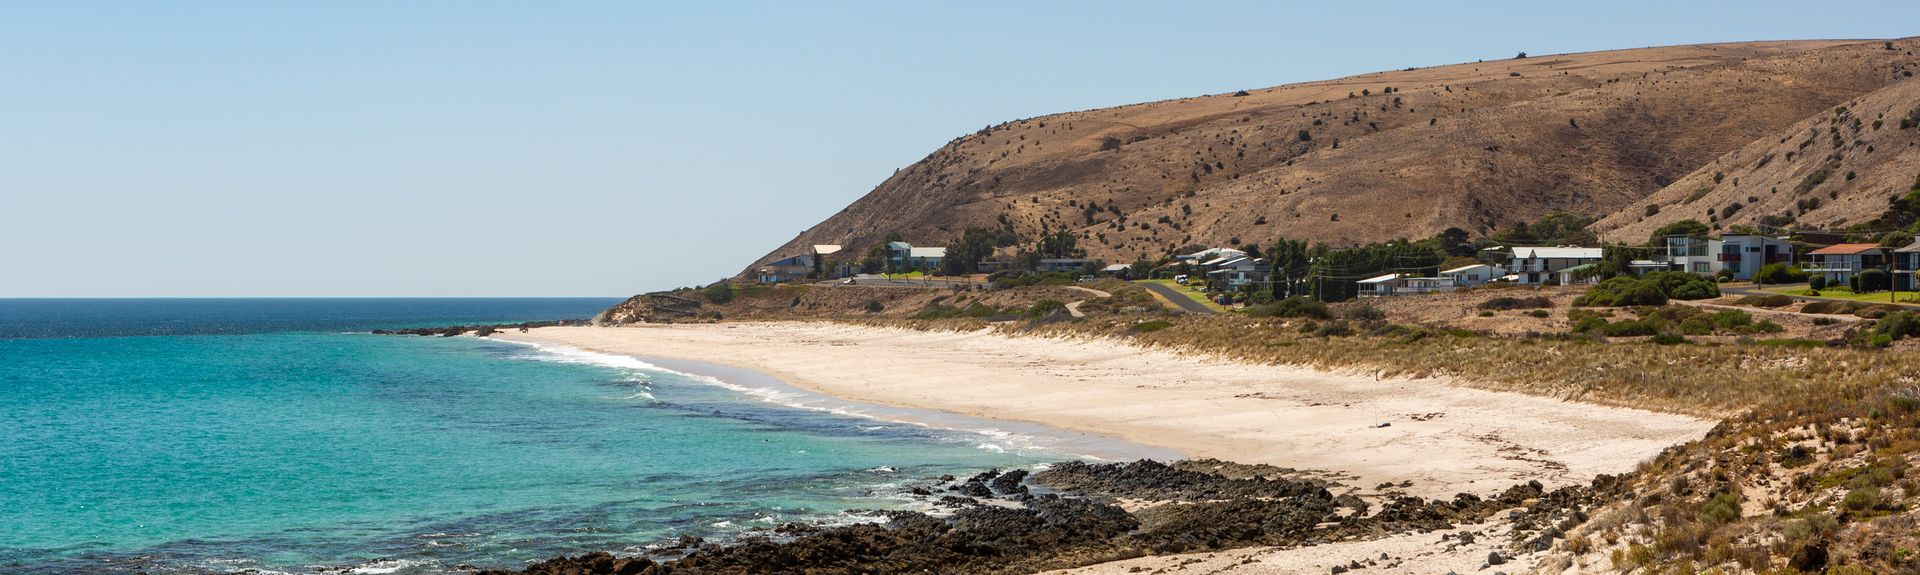 Carrickalinga, South Australia, Australia